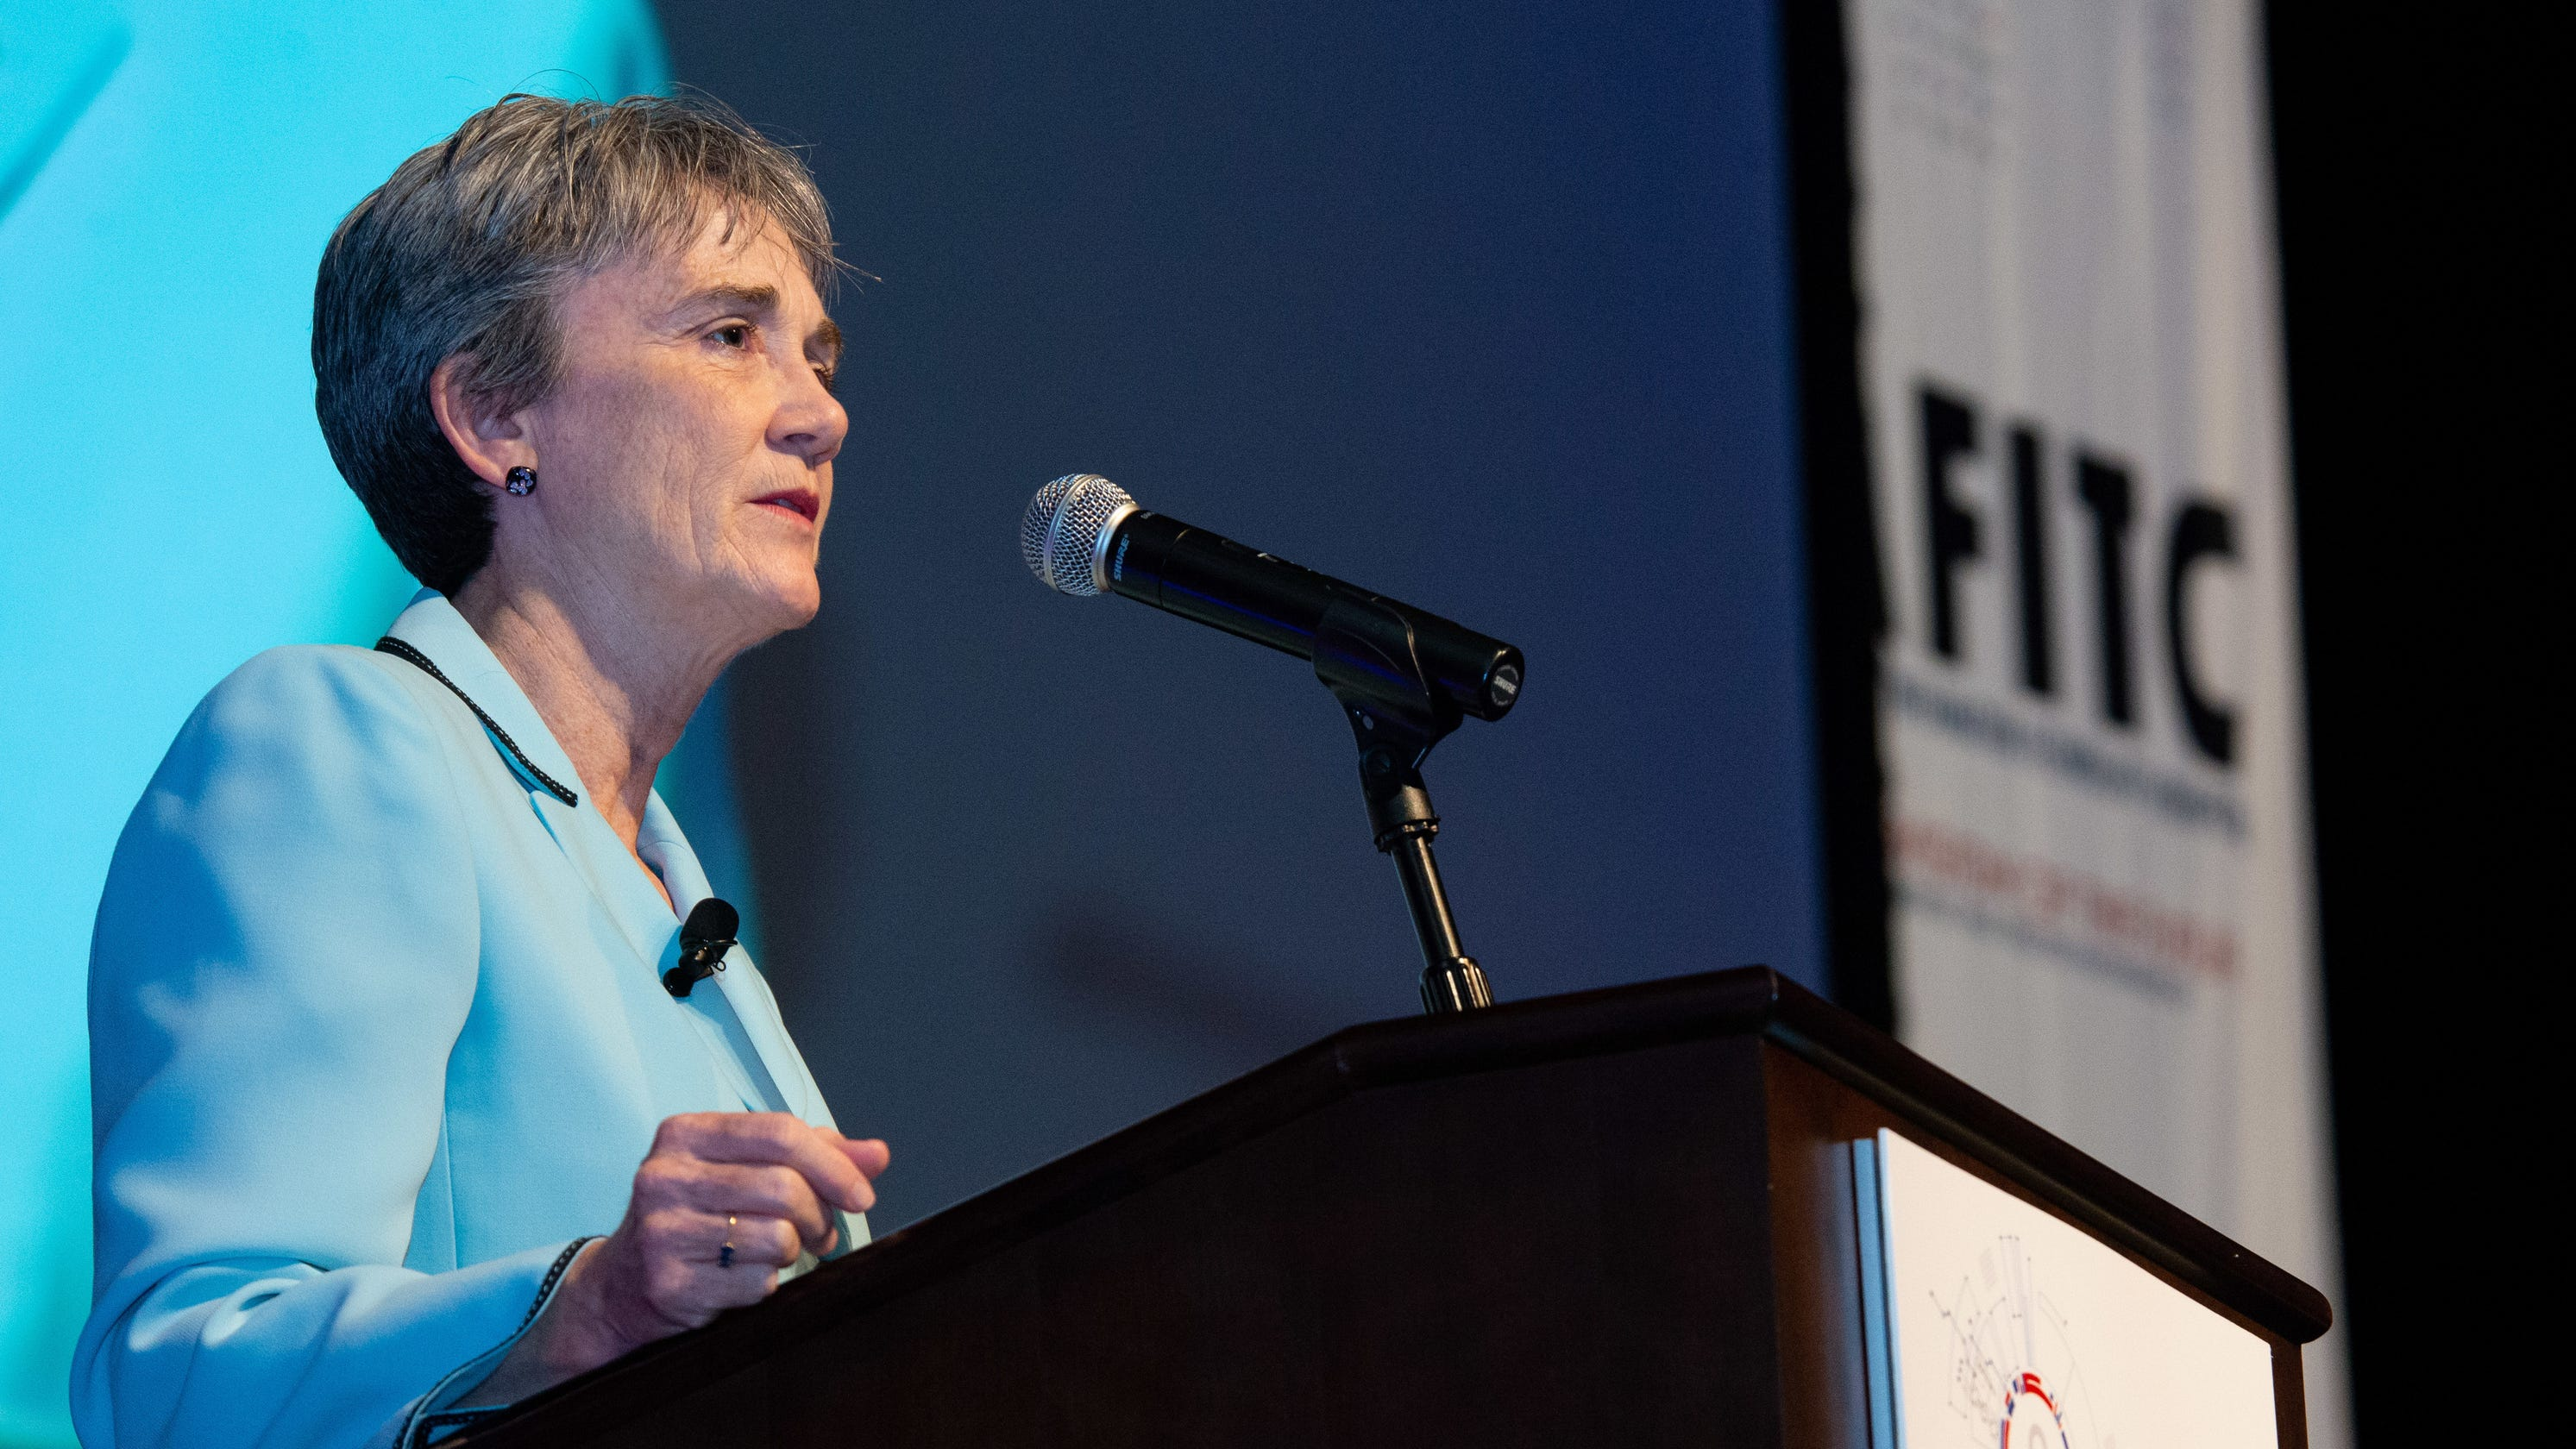 UTEP president: Heather Wilson named to replace Diana Natalicio